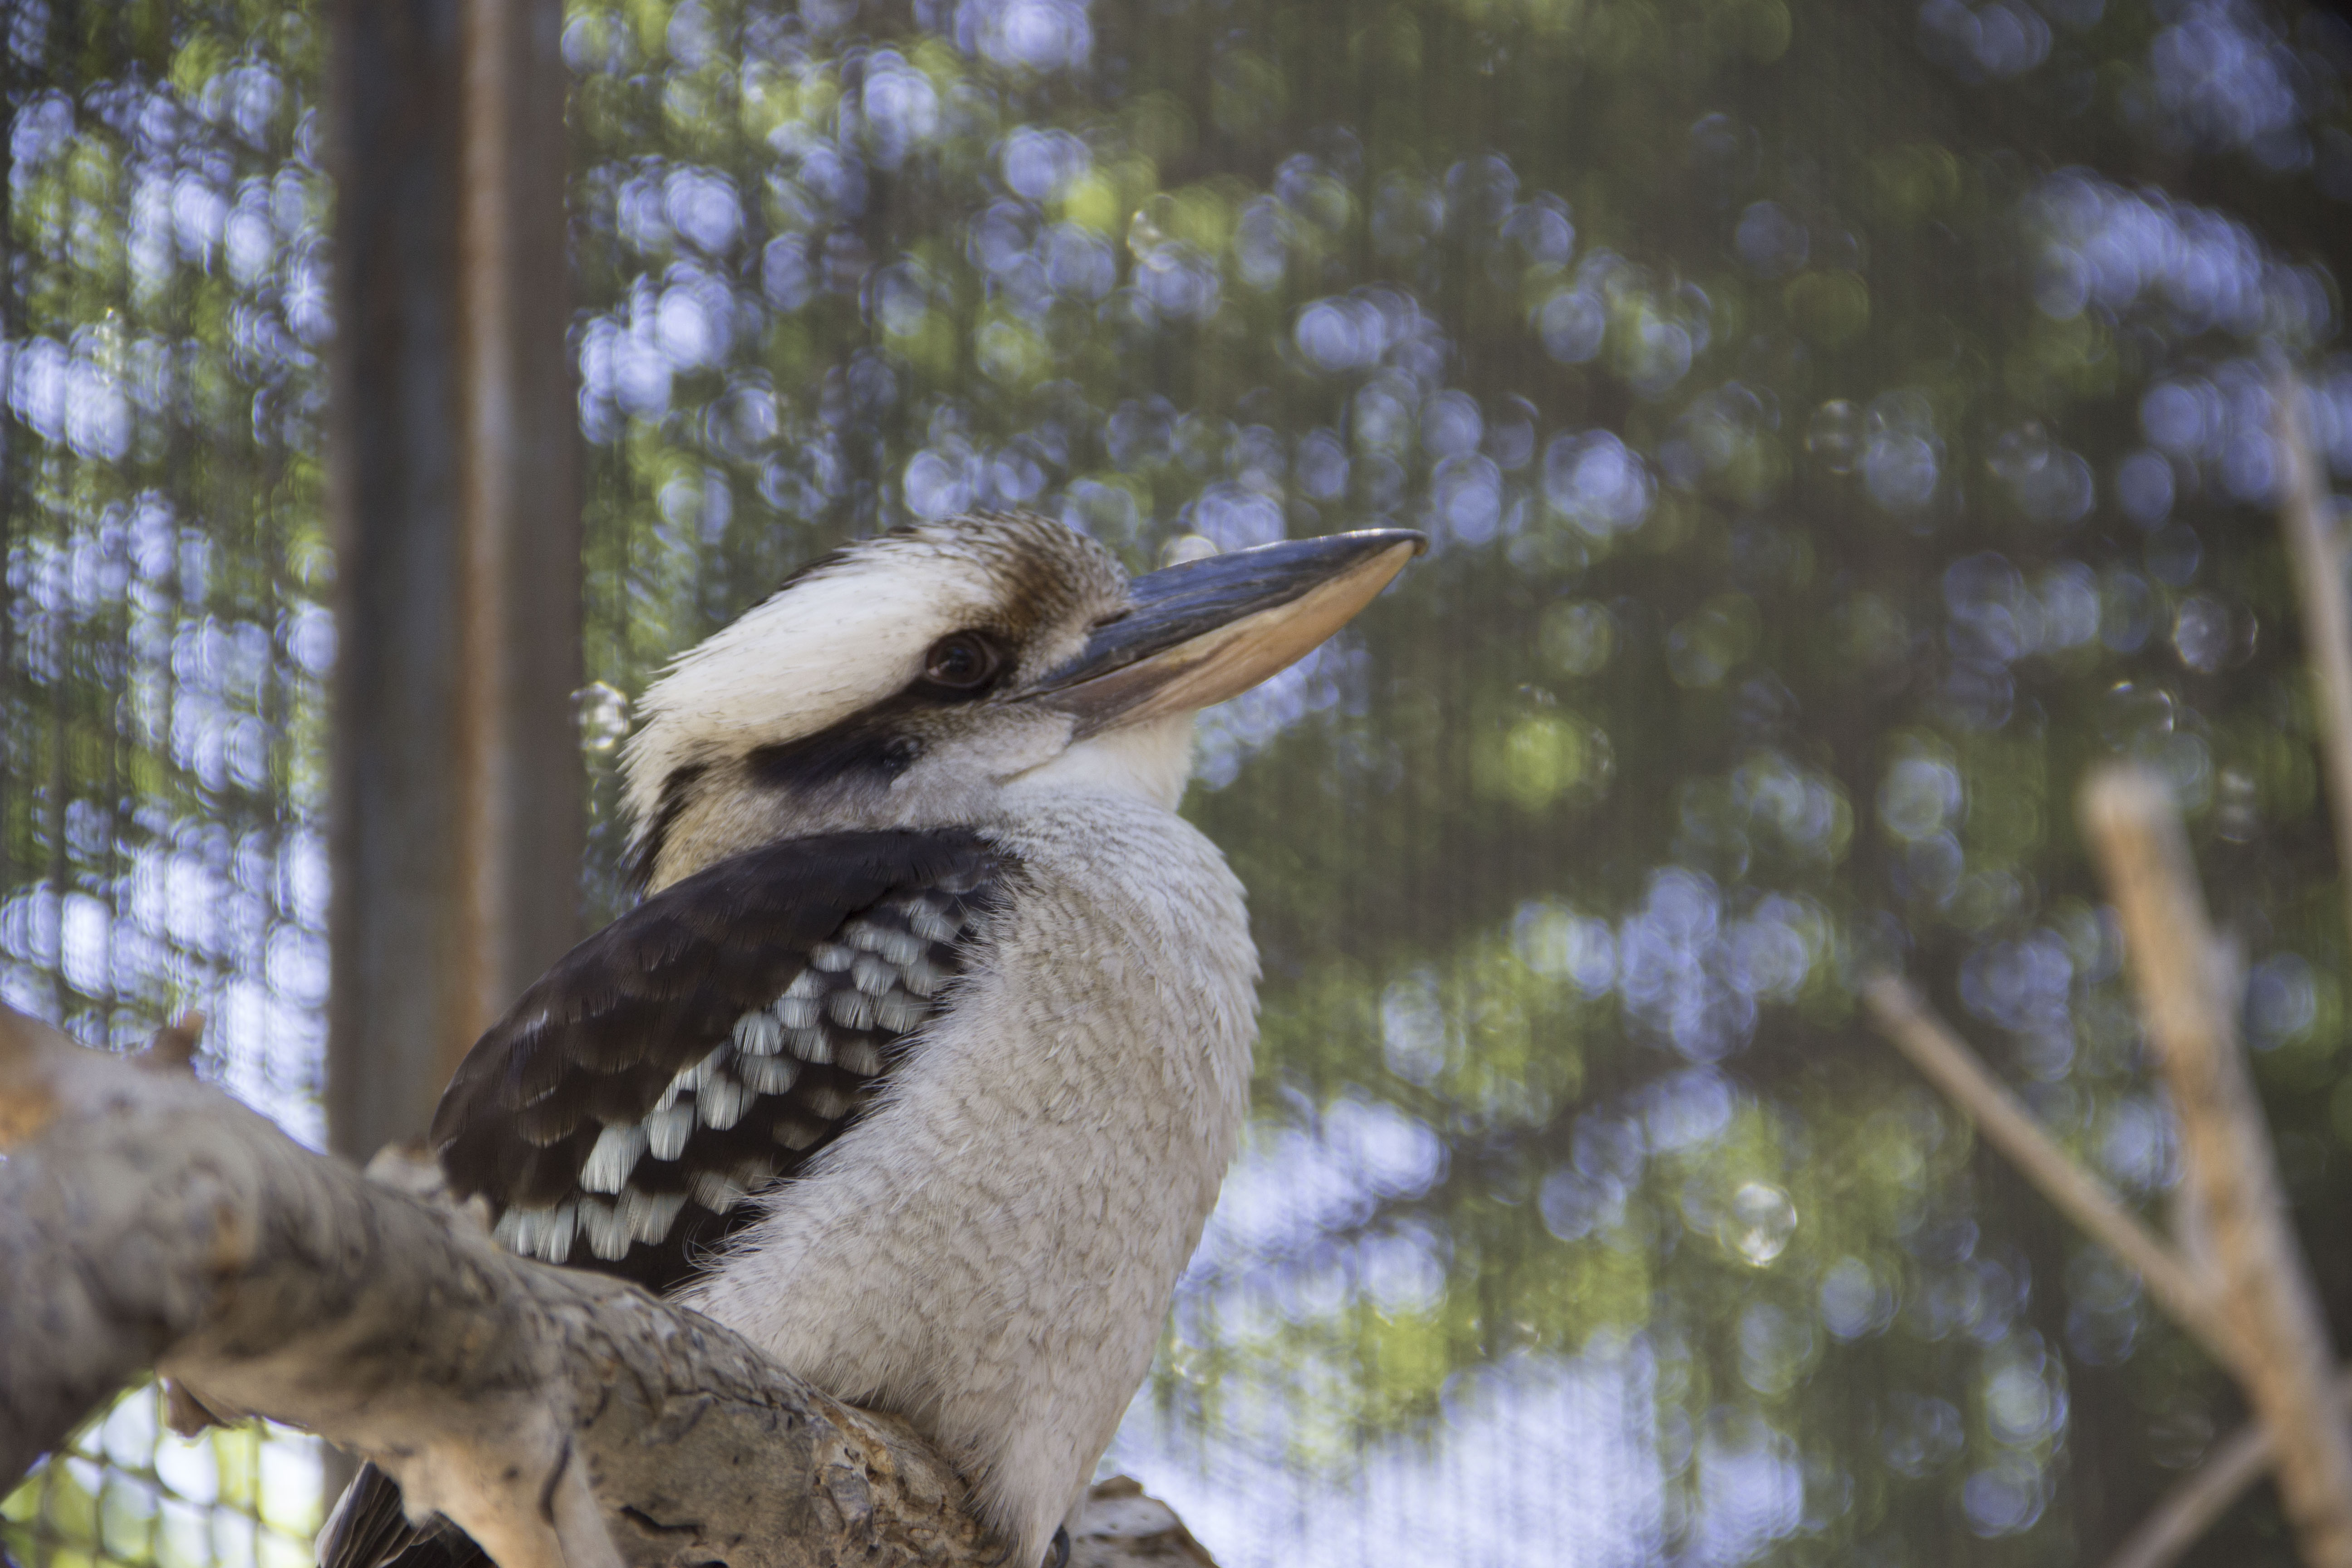 Max the kookaburra